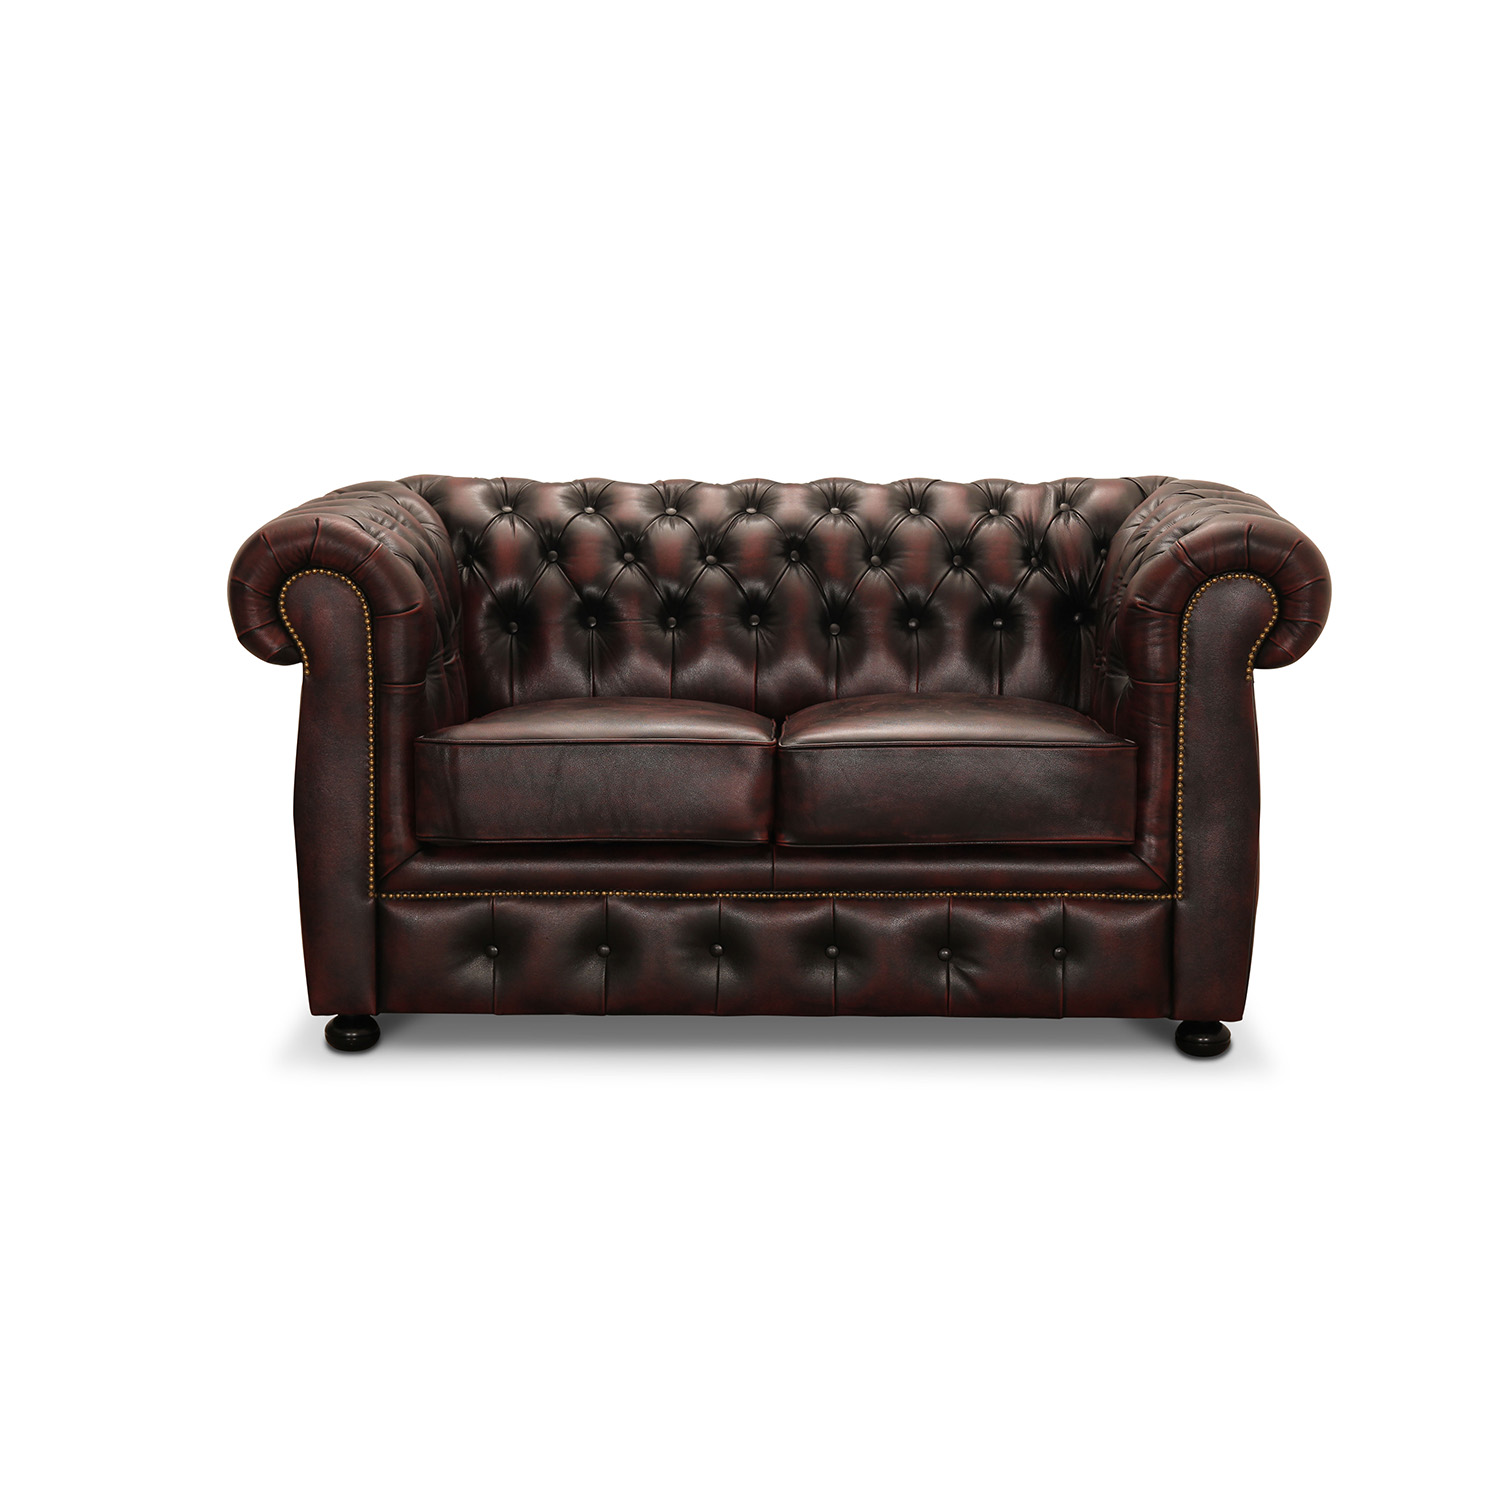 HAGA Liverpool 2 chesterfield sofa - oxblod læder